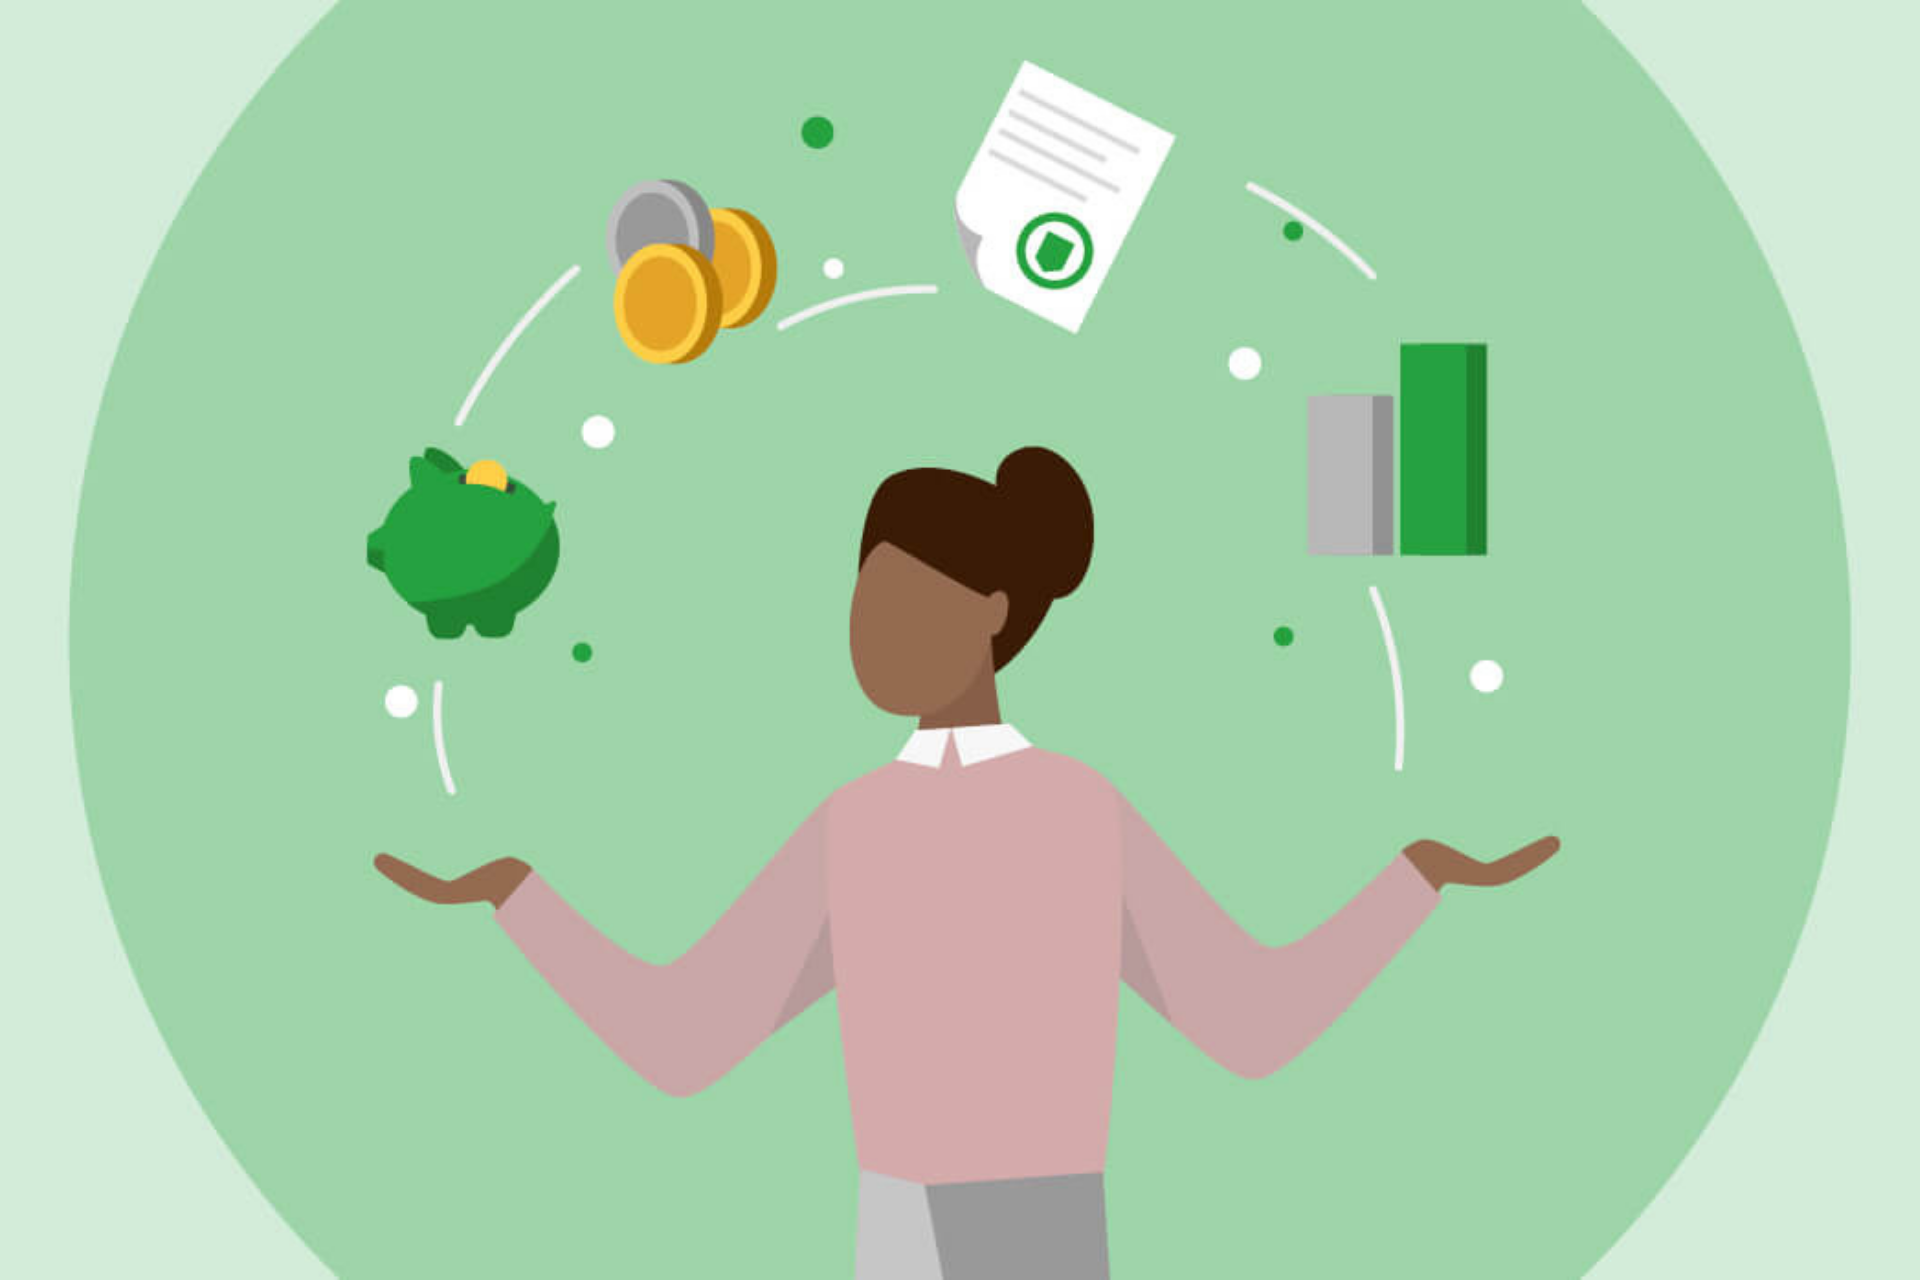 3 freelancers and their accountant wishlists